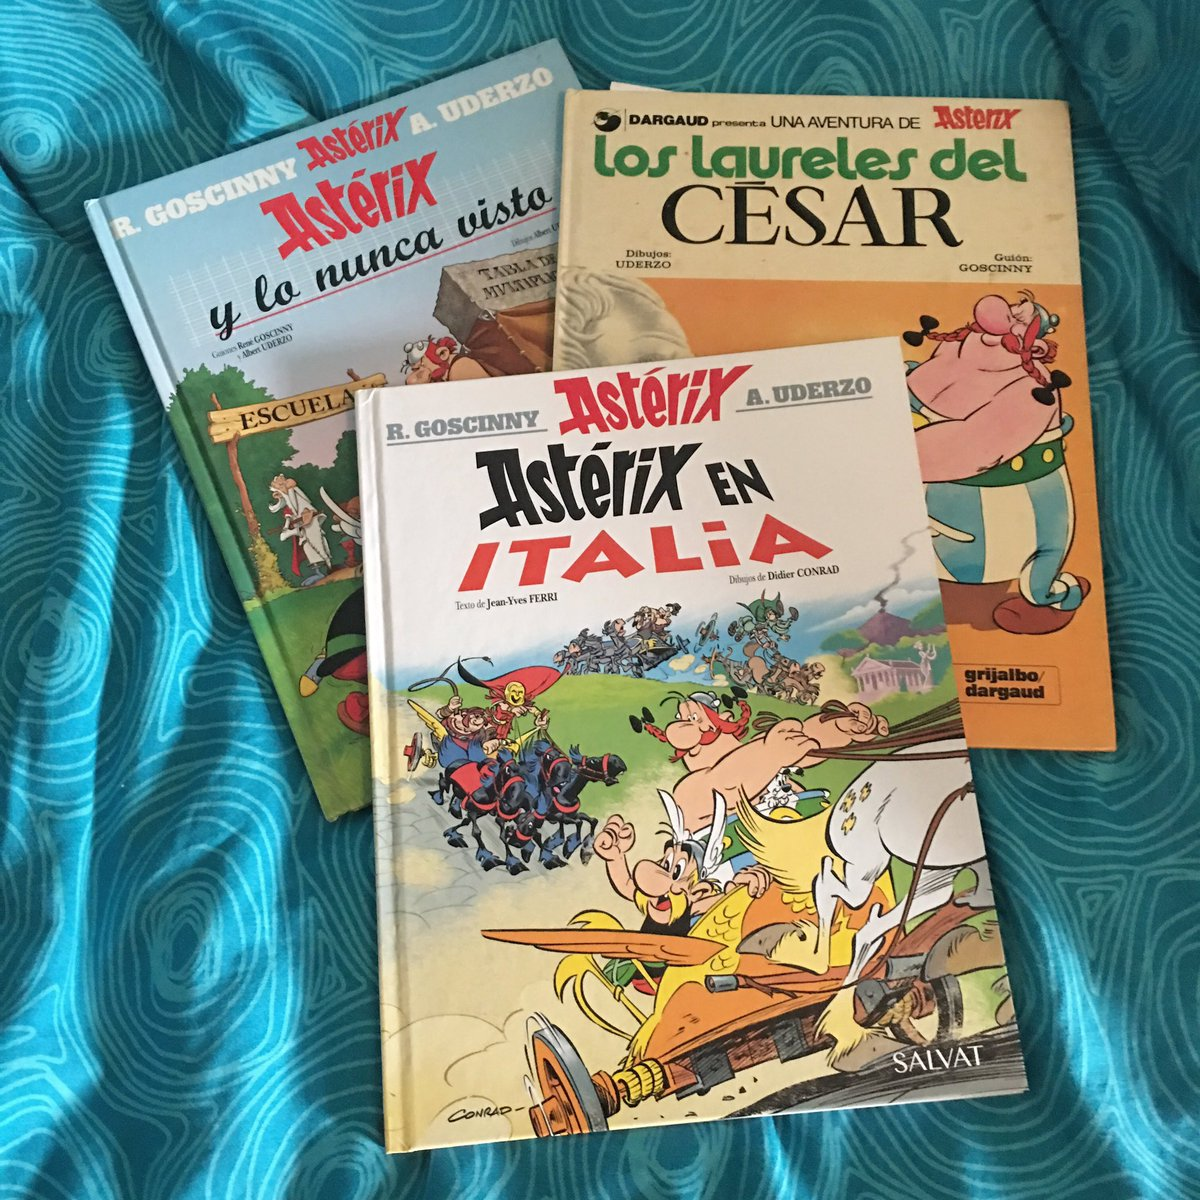 Asterix Y Obelix Libros Madrereciente On Twitter